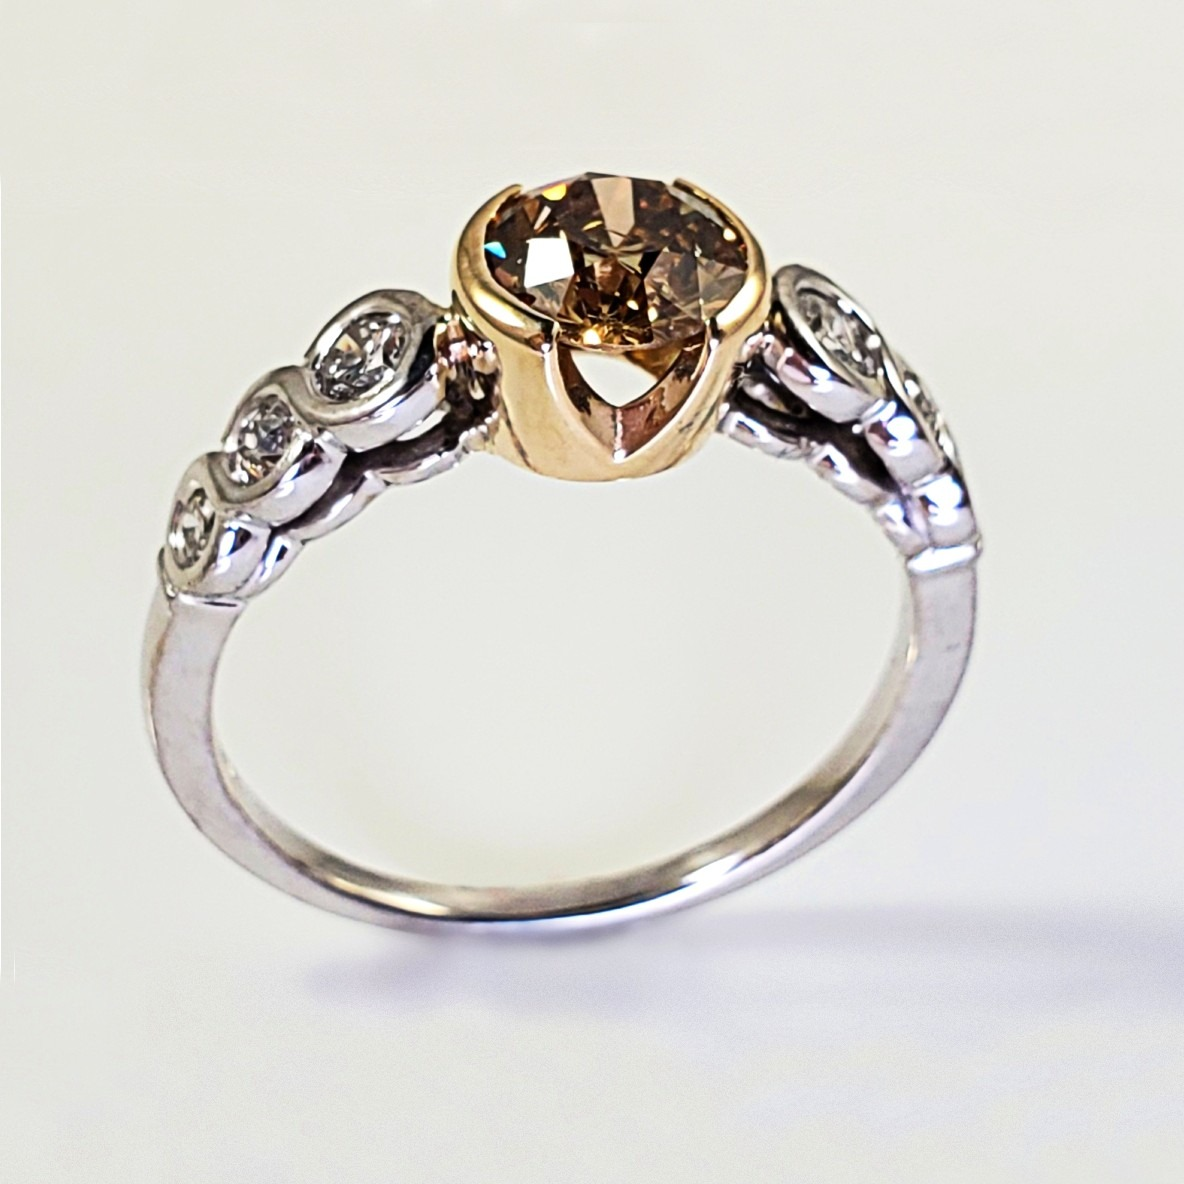 14K Two Tone Gold Remount with White and Champagne Diamond